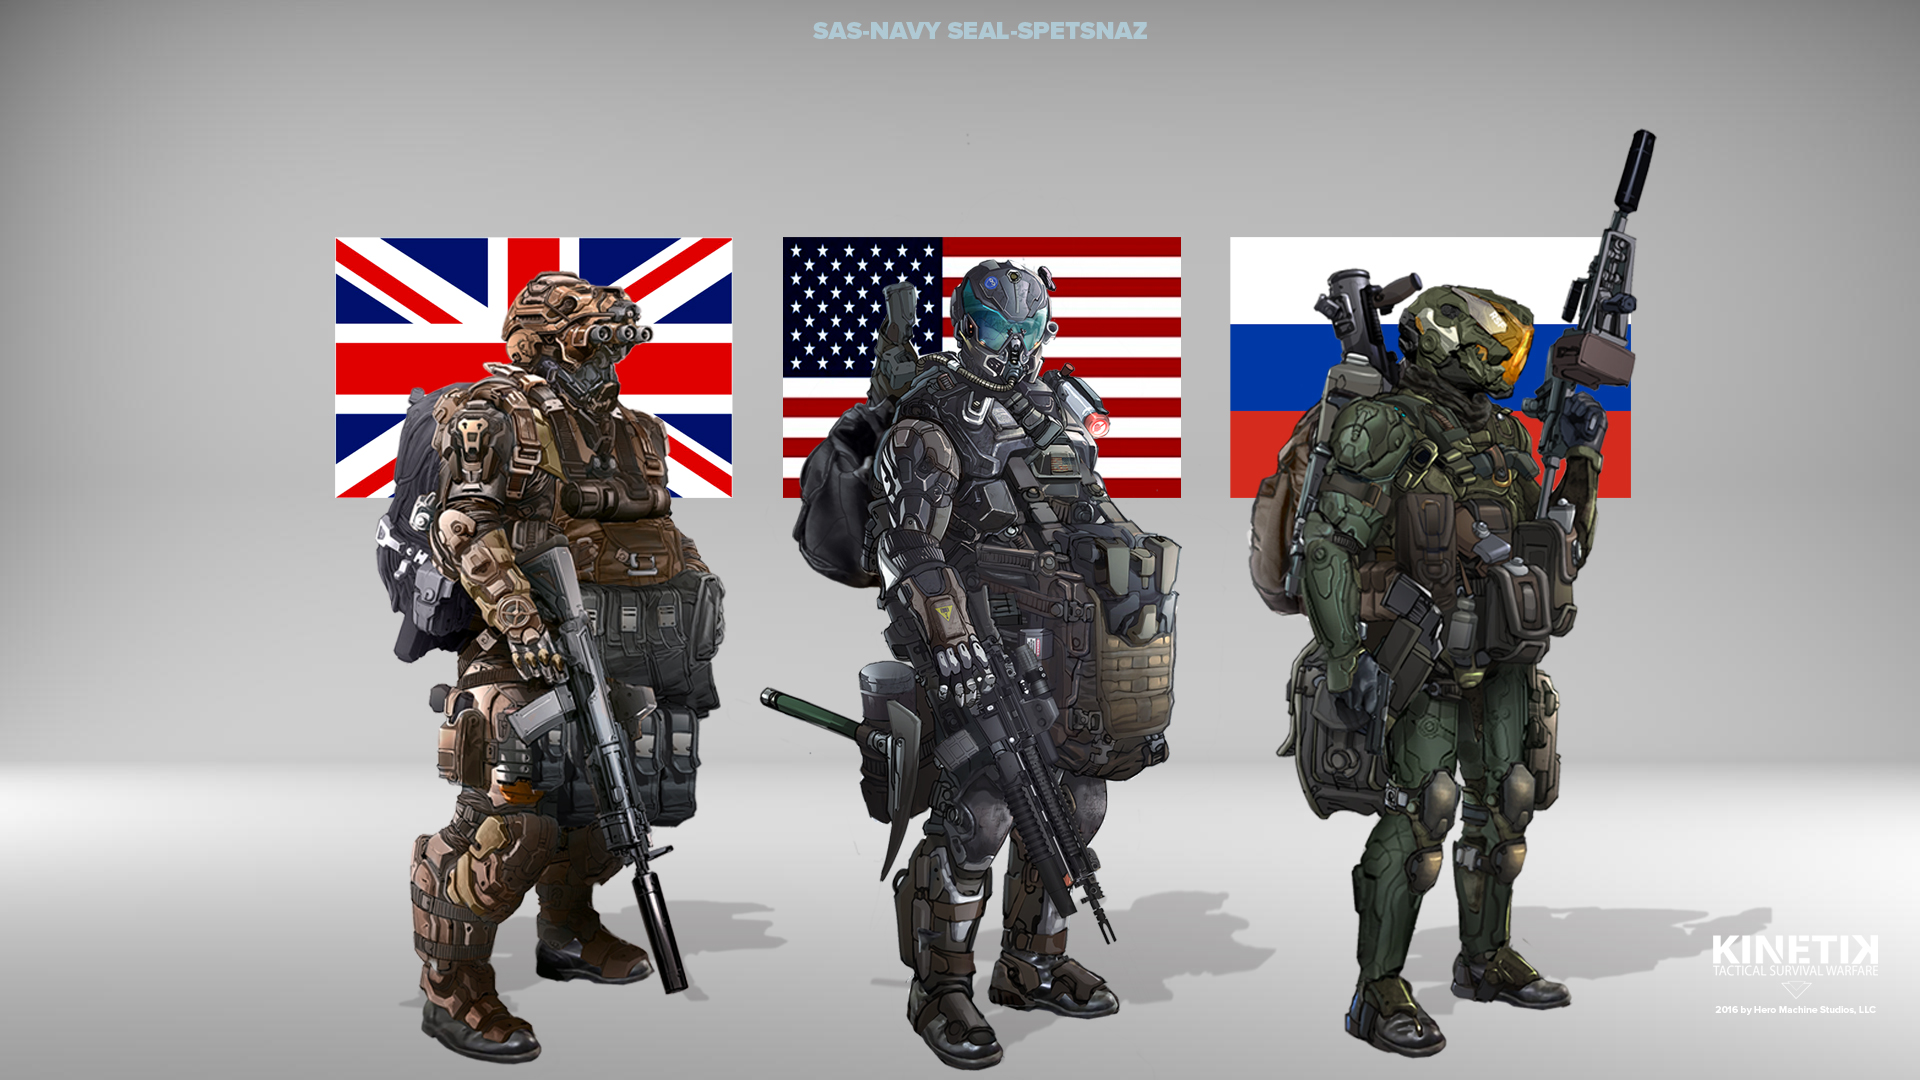 screen017_sas-navyseal-spetsnaz-tactical-concept-art